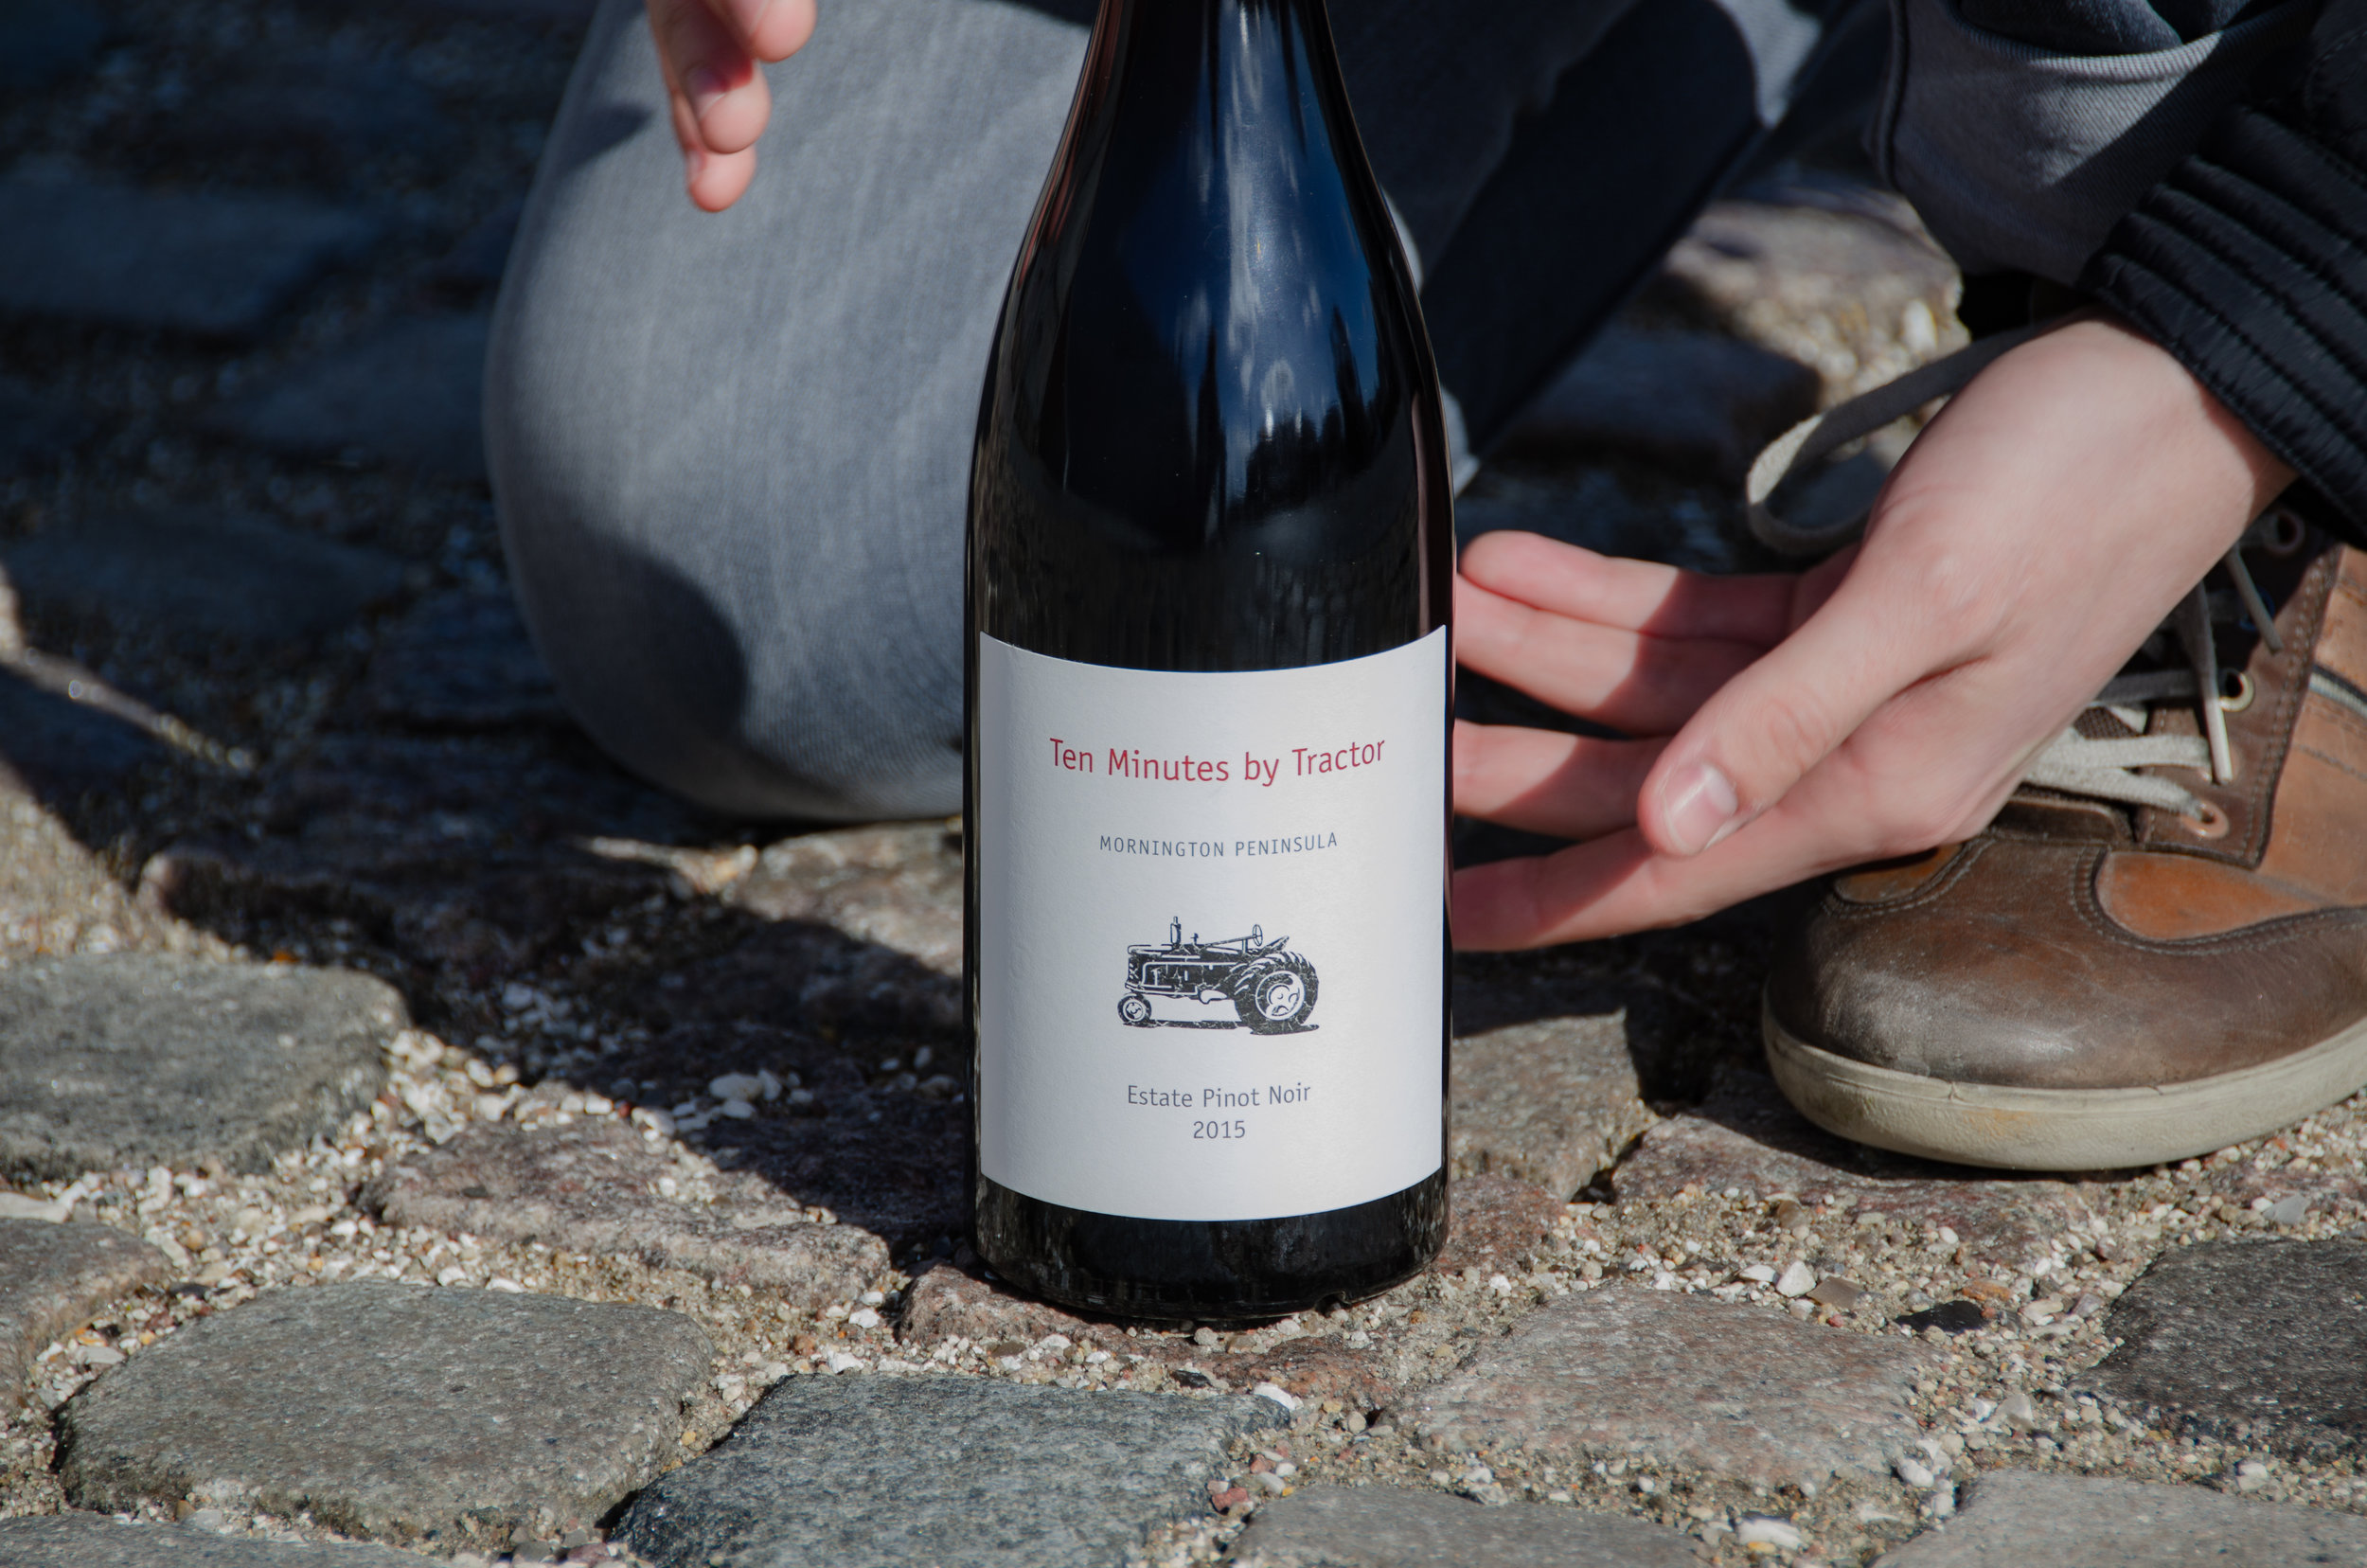 Estate Pinot Noir fra Ten Minutes by Tractor